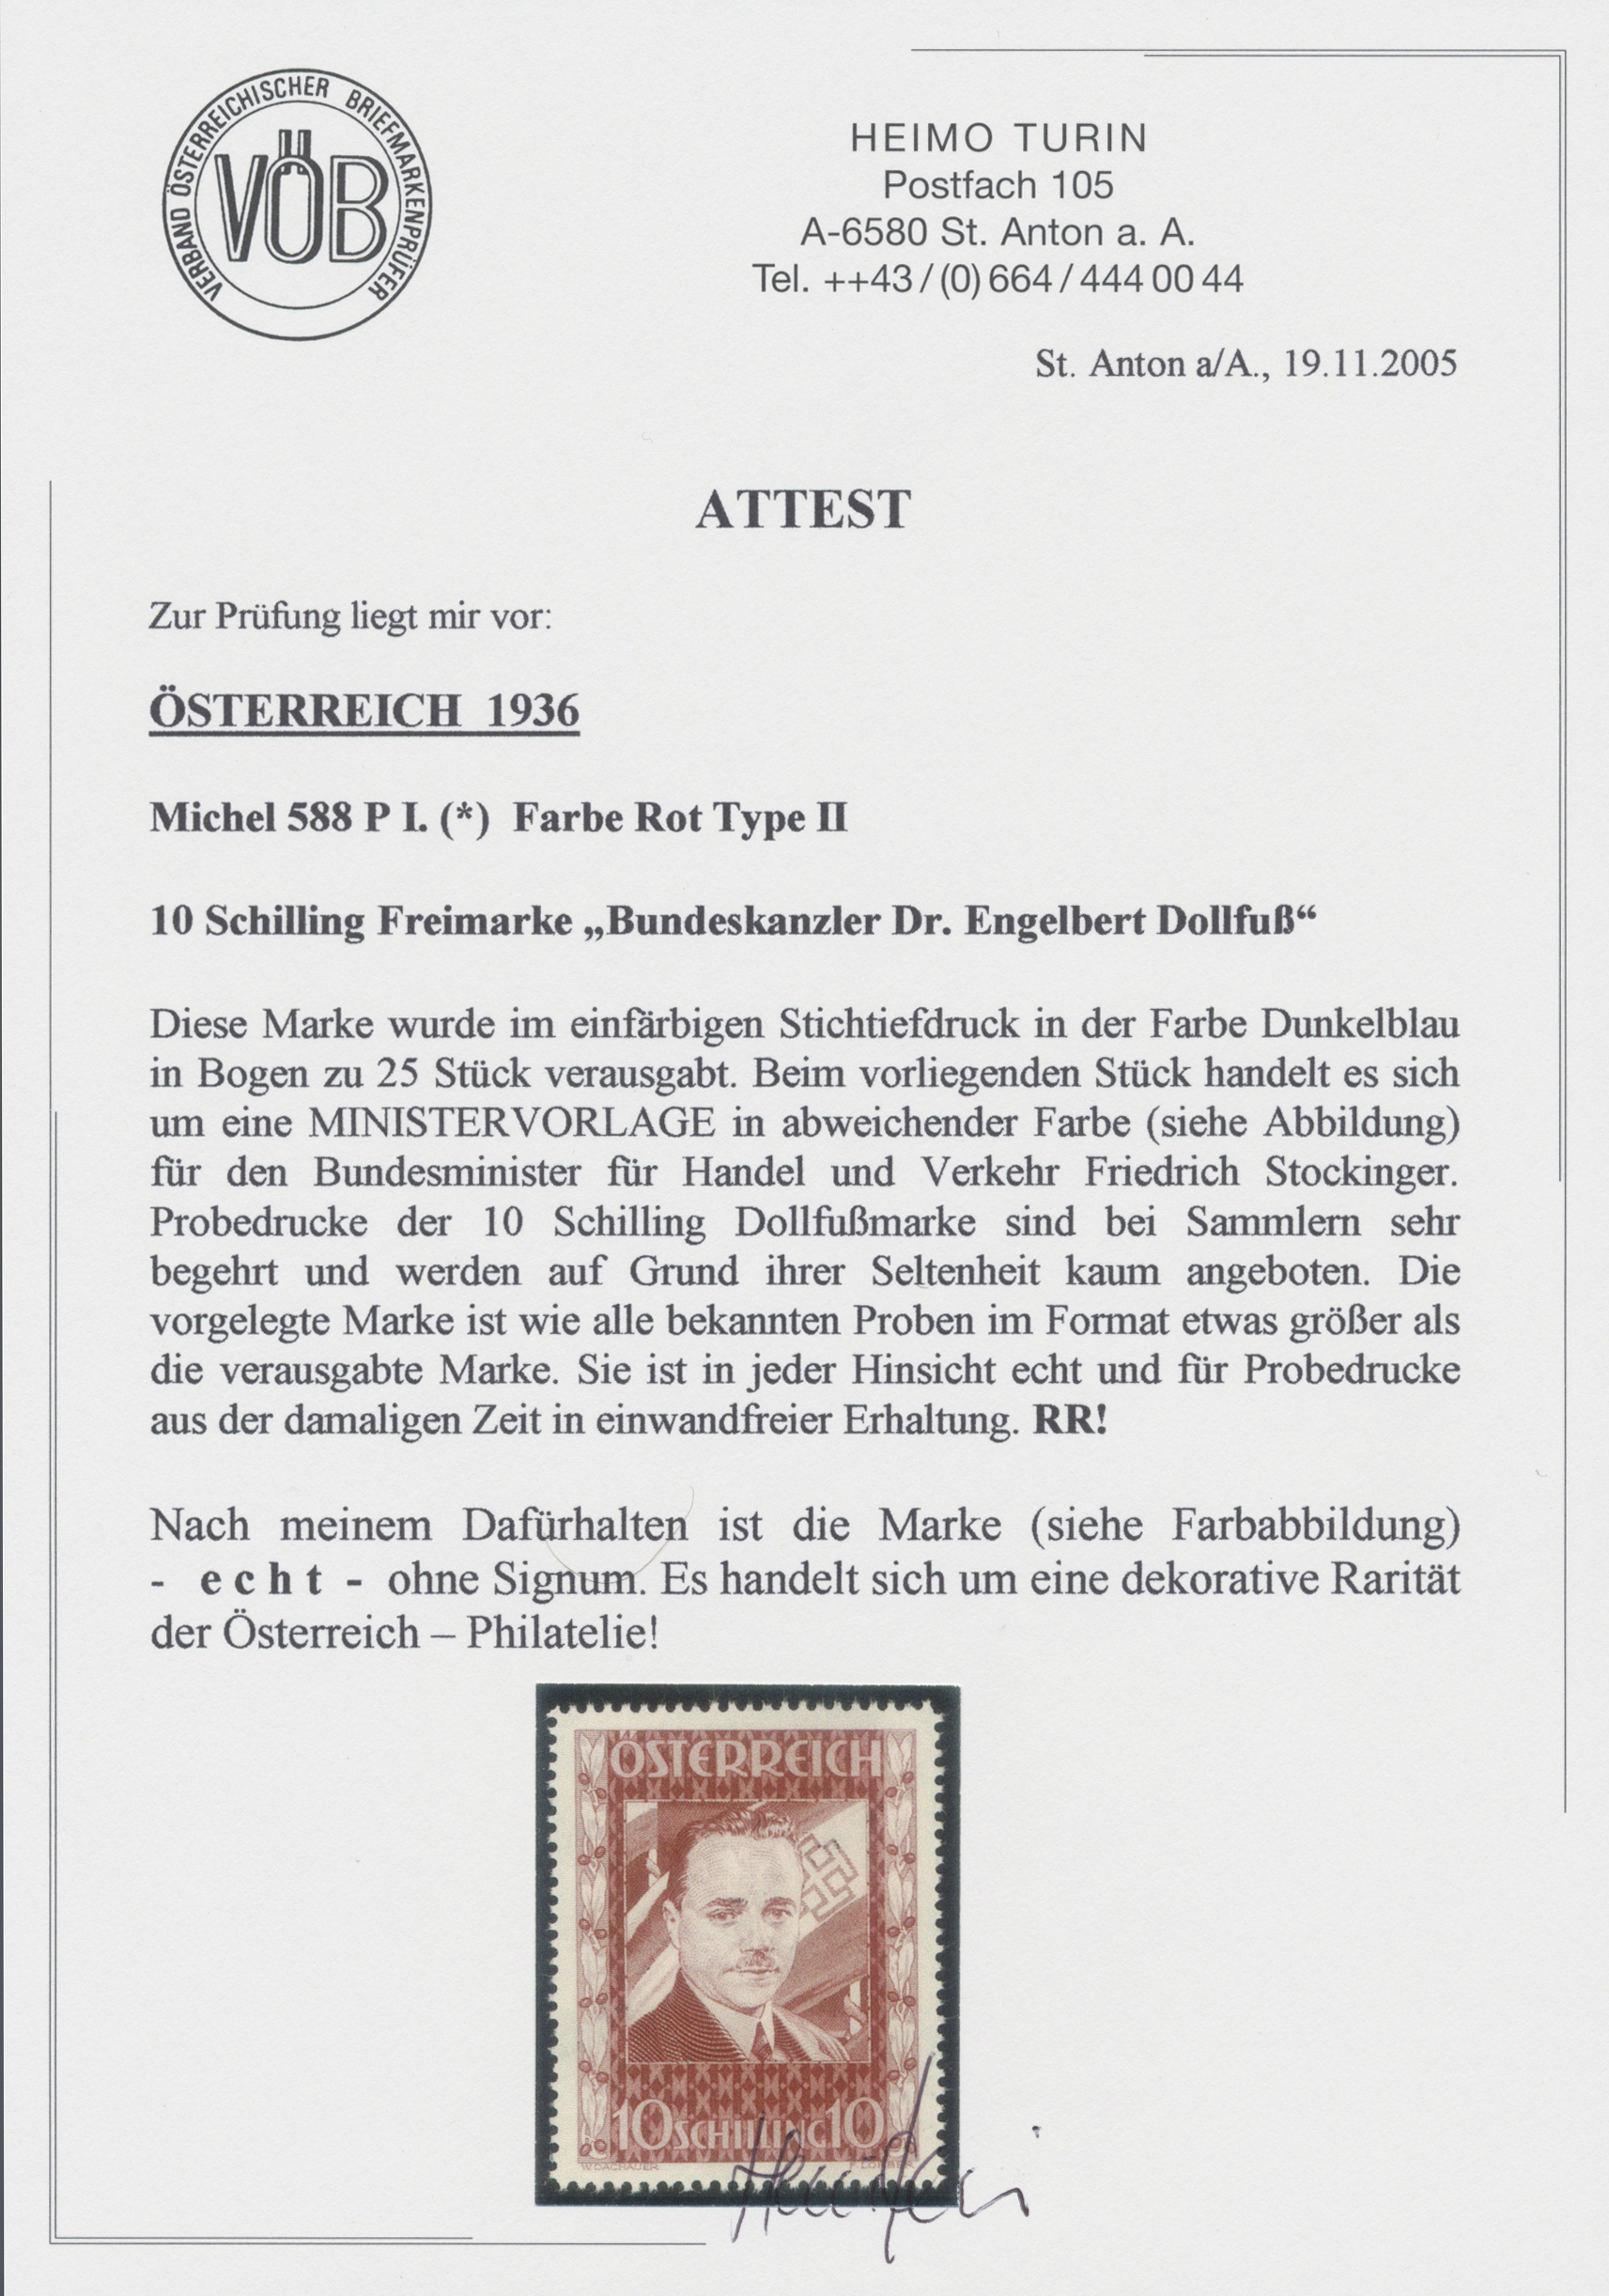 Lot 00025 - österreich  -  Auktionshaus Christoph Gärtner GmbH & Co. KG Intenational Rarities and contains lots from the collection of Peter Zgonc